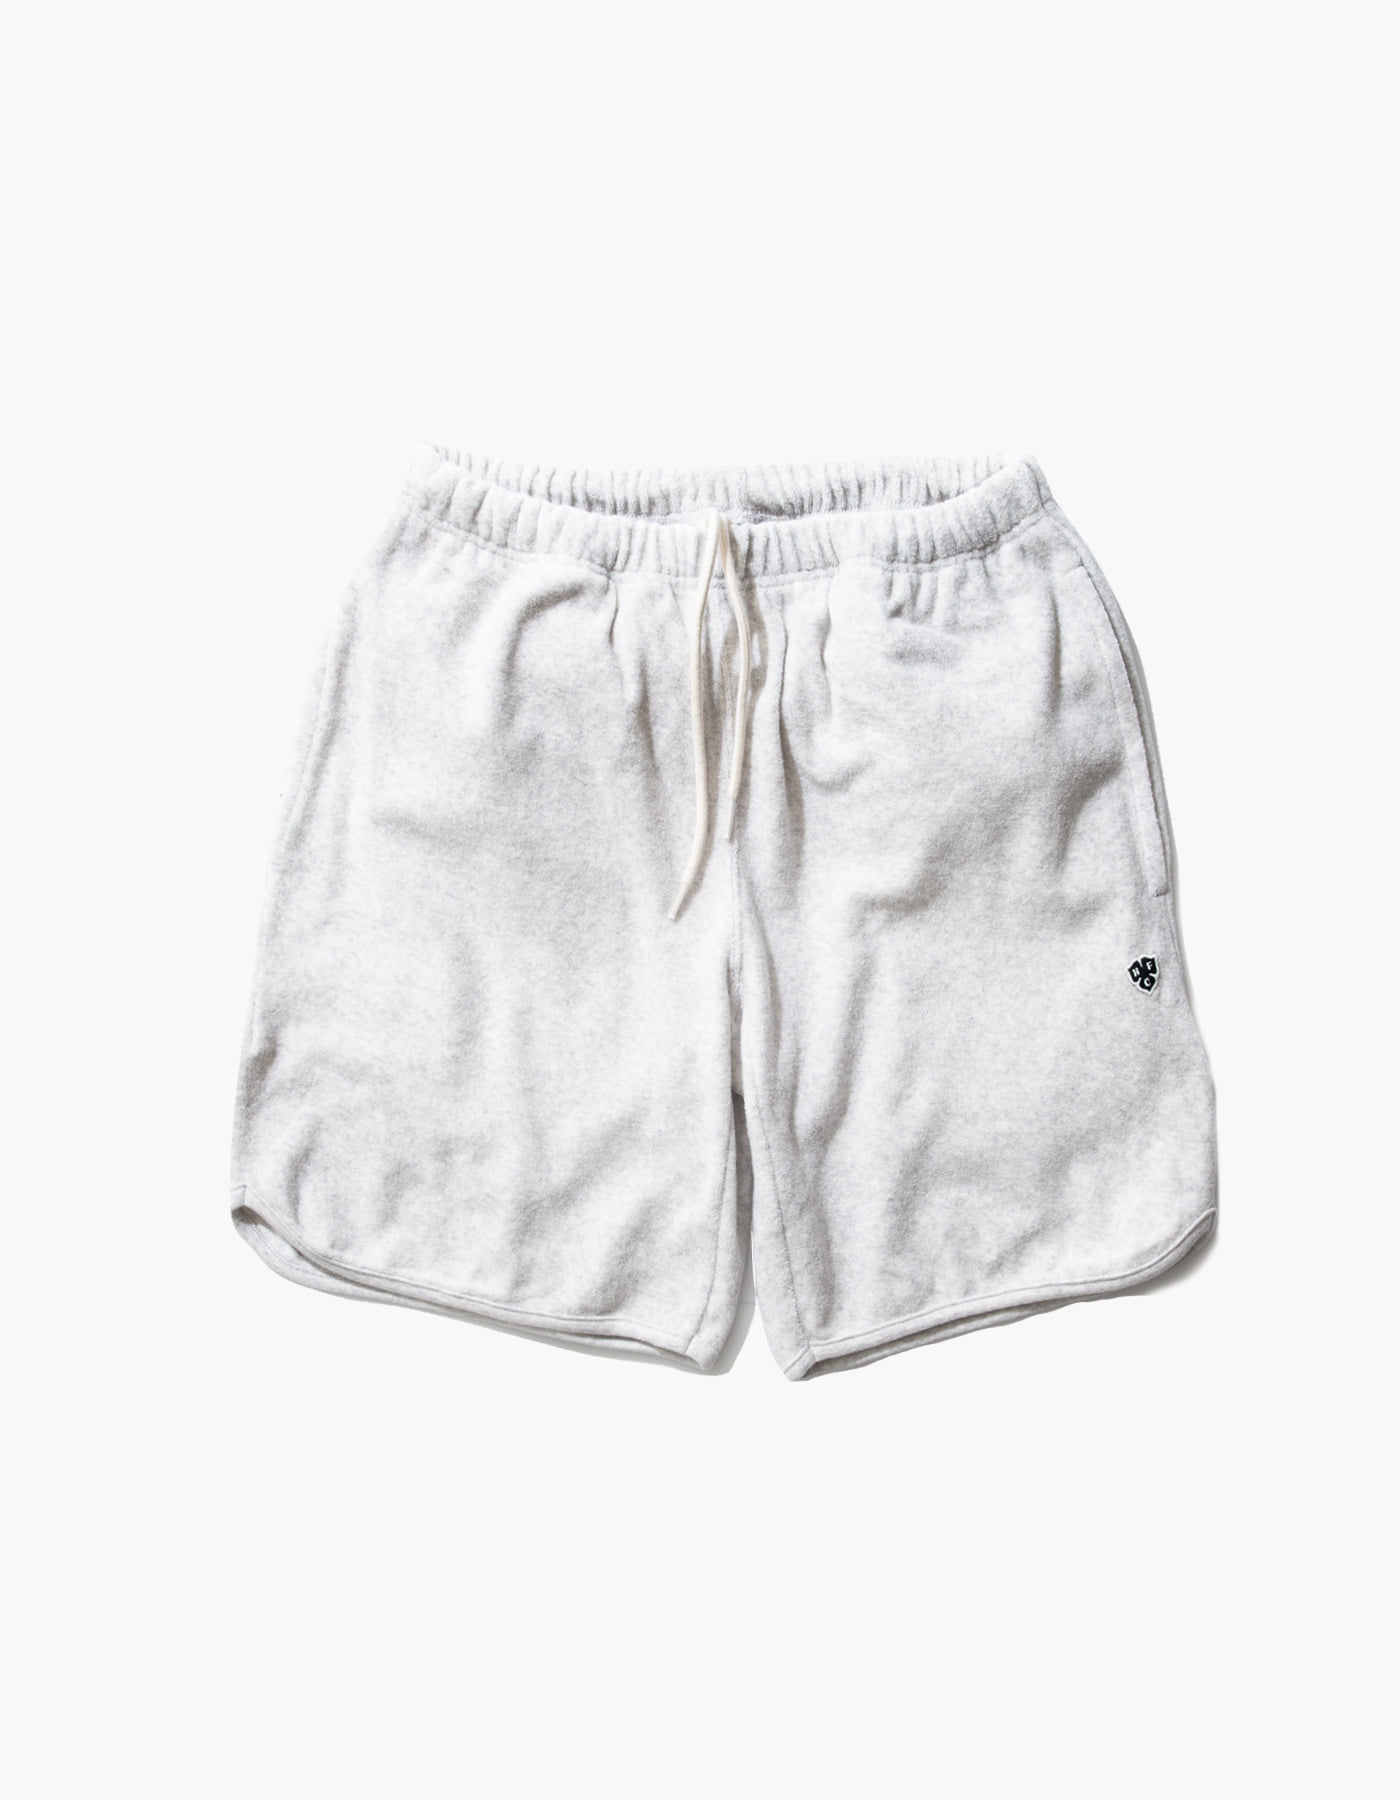 HFC CREST TOWEL SHORTS / M.GREY(1%)